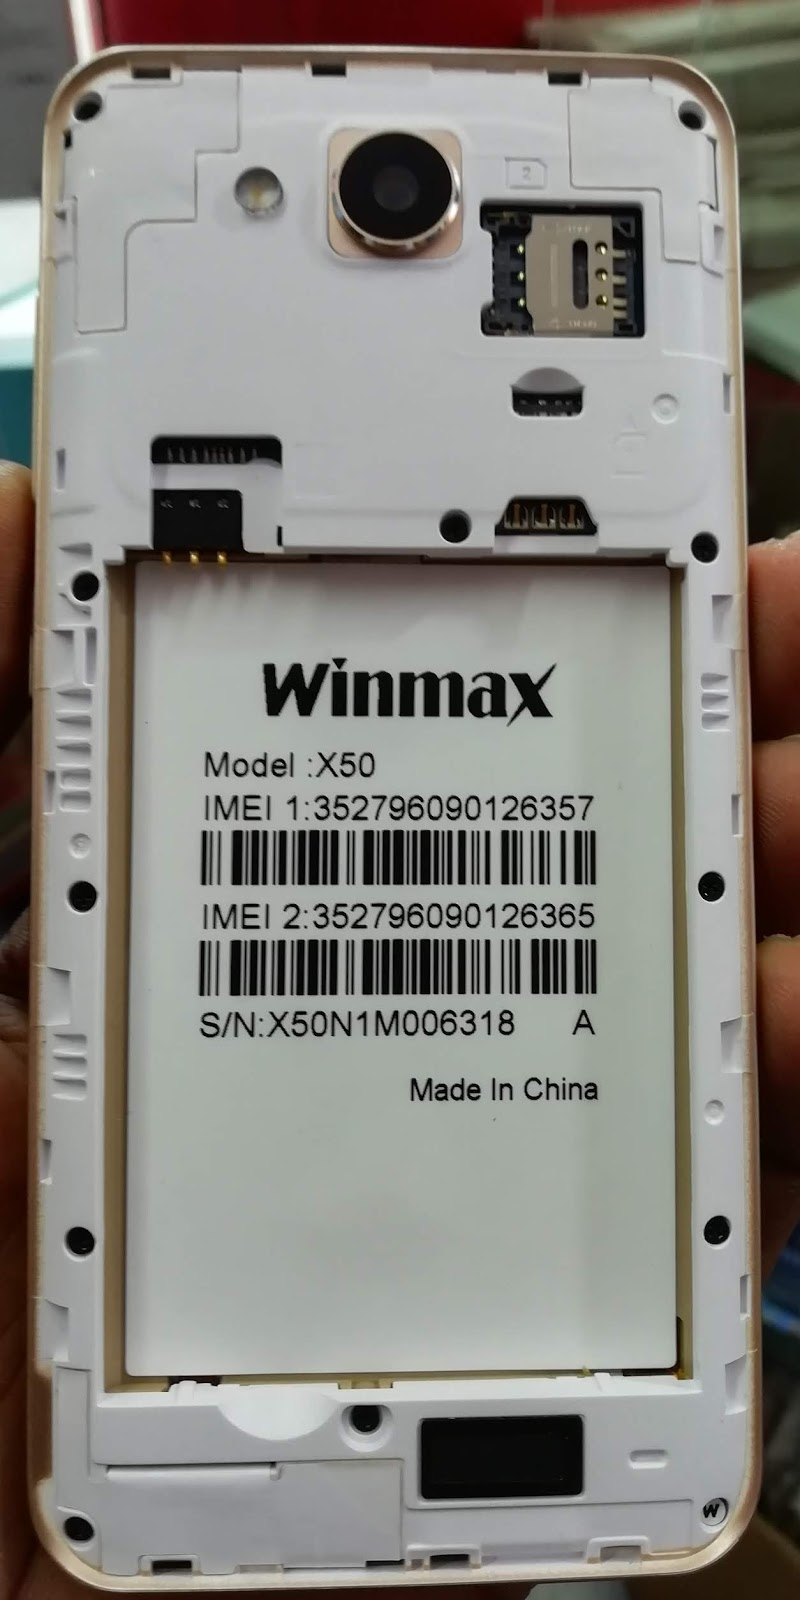 Winmax-X50-Flash-File.jpg